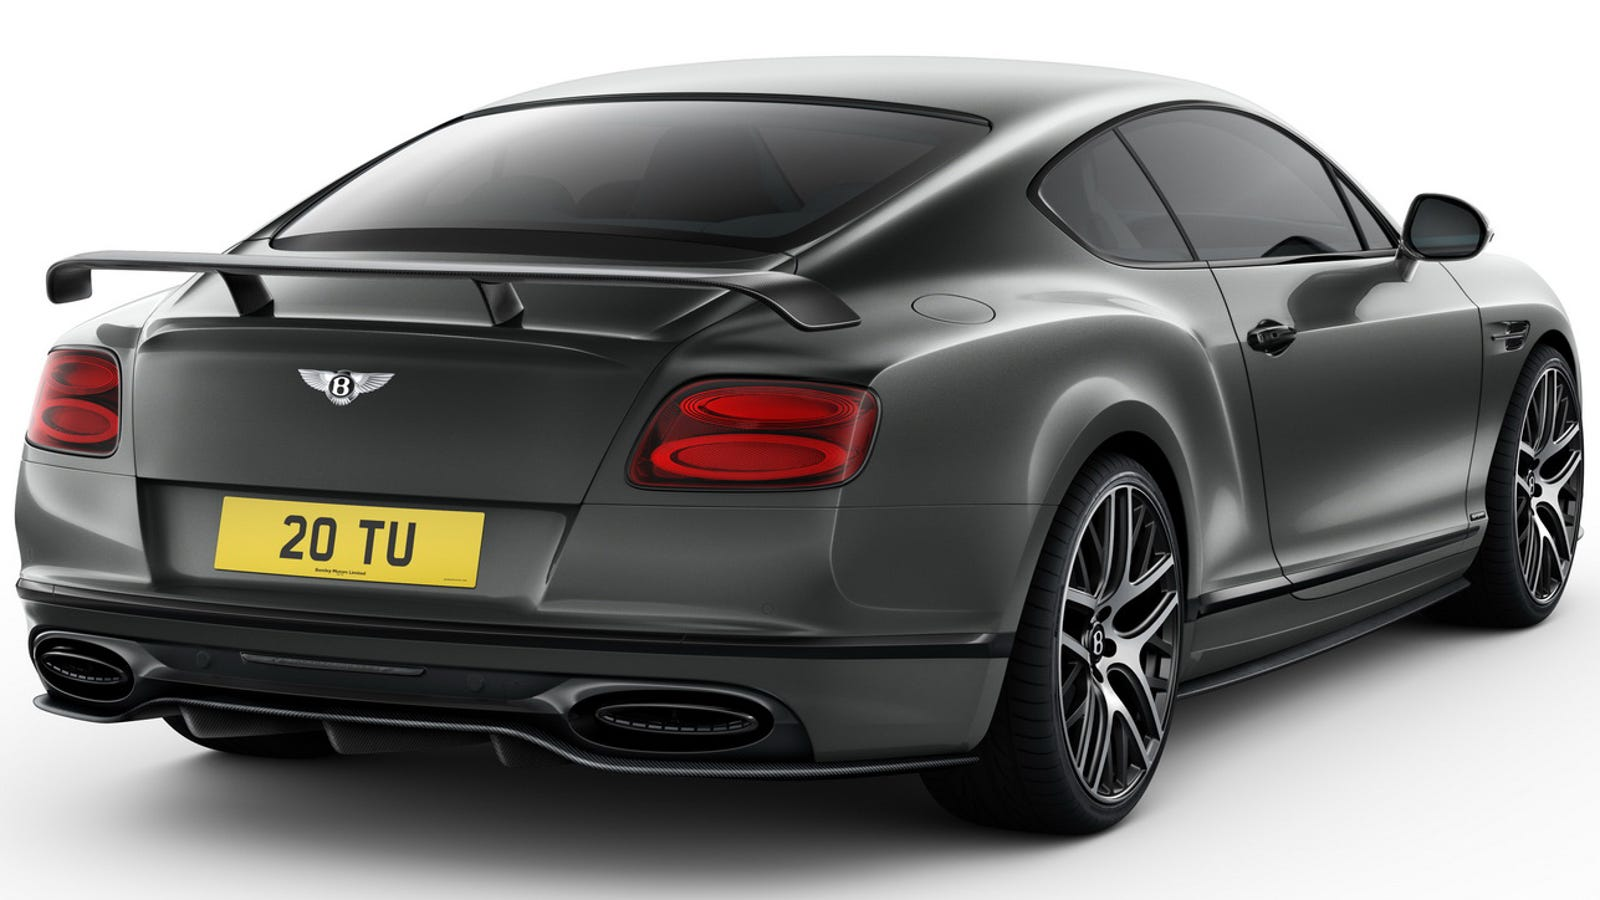 bentley continental jalopnik with The 700 Hp Bentley Continental Supersports Is Very Very 1790844578 on Ten Most Exotic Cars Destroyed By Cash For Clunkers besides 15 furthermore Cotd No Respect For The Vw Phaeton Edition likewise I Have A Yamaha Zuma Converted To 70cc Its A Little Sp 1451291143 further Fast Furious 8 Cars.